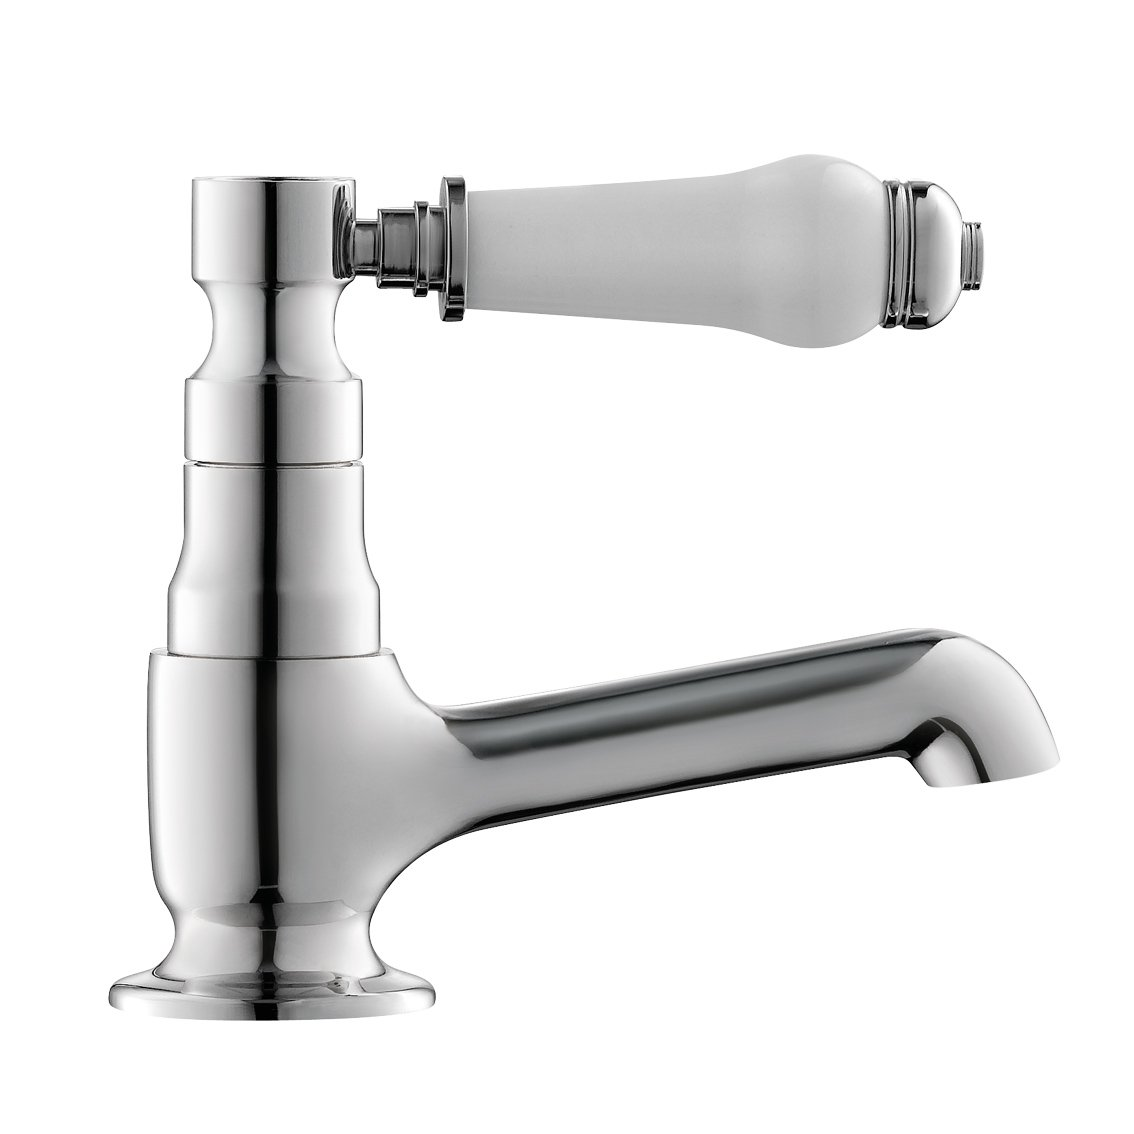 iBathUK Traditional Pair of Hot and Cold Basin Sink Taps Bath Filler Faucet Set TP135